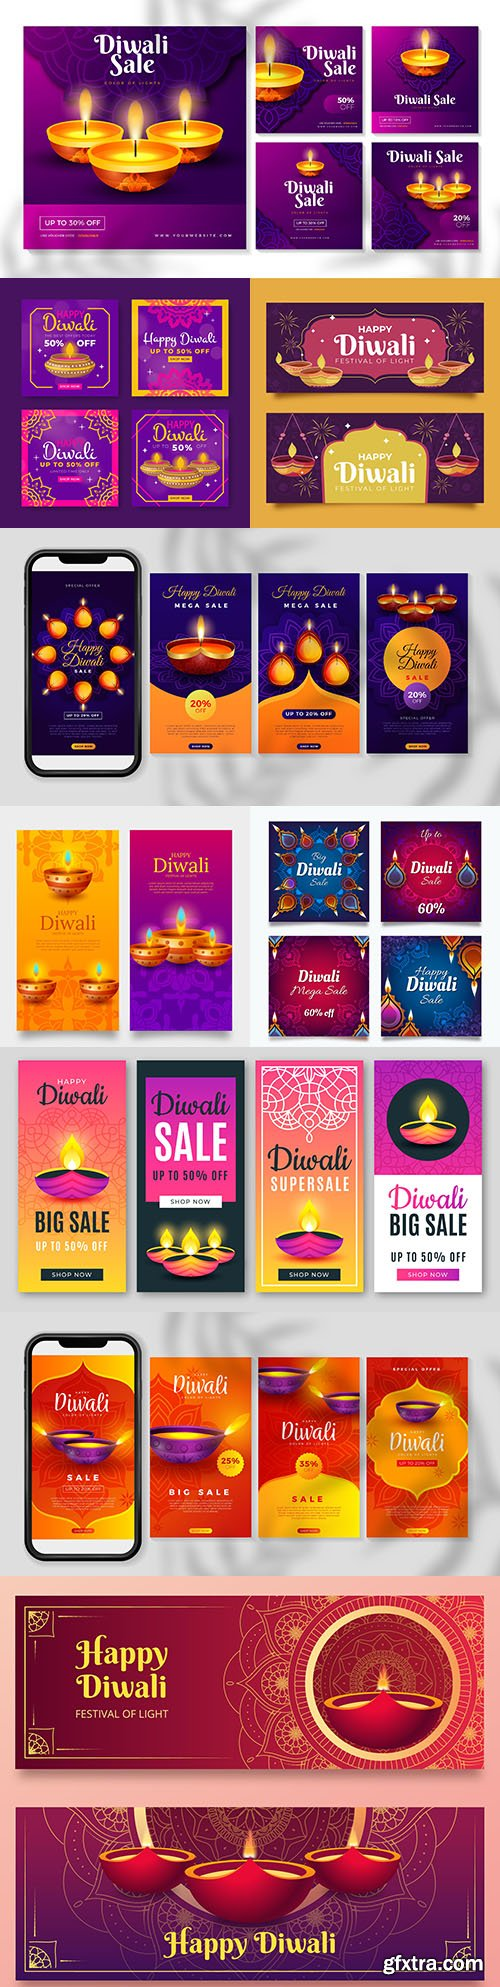 Diwali Indian traditional culture decoration illustration 6